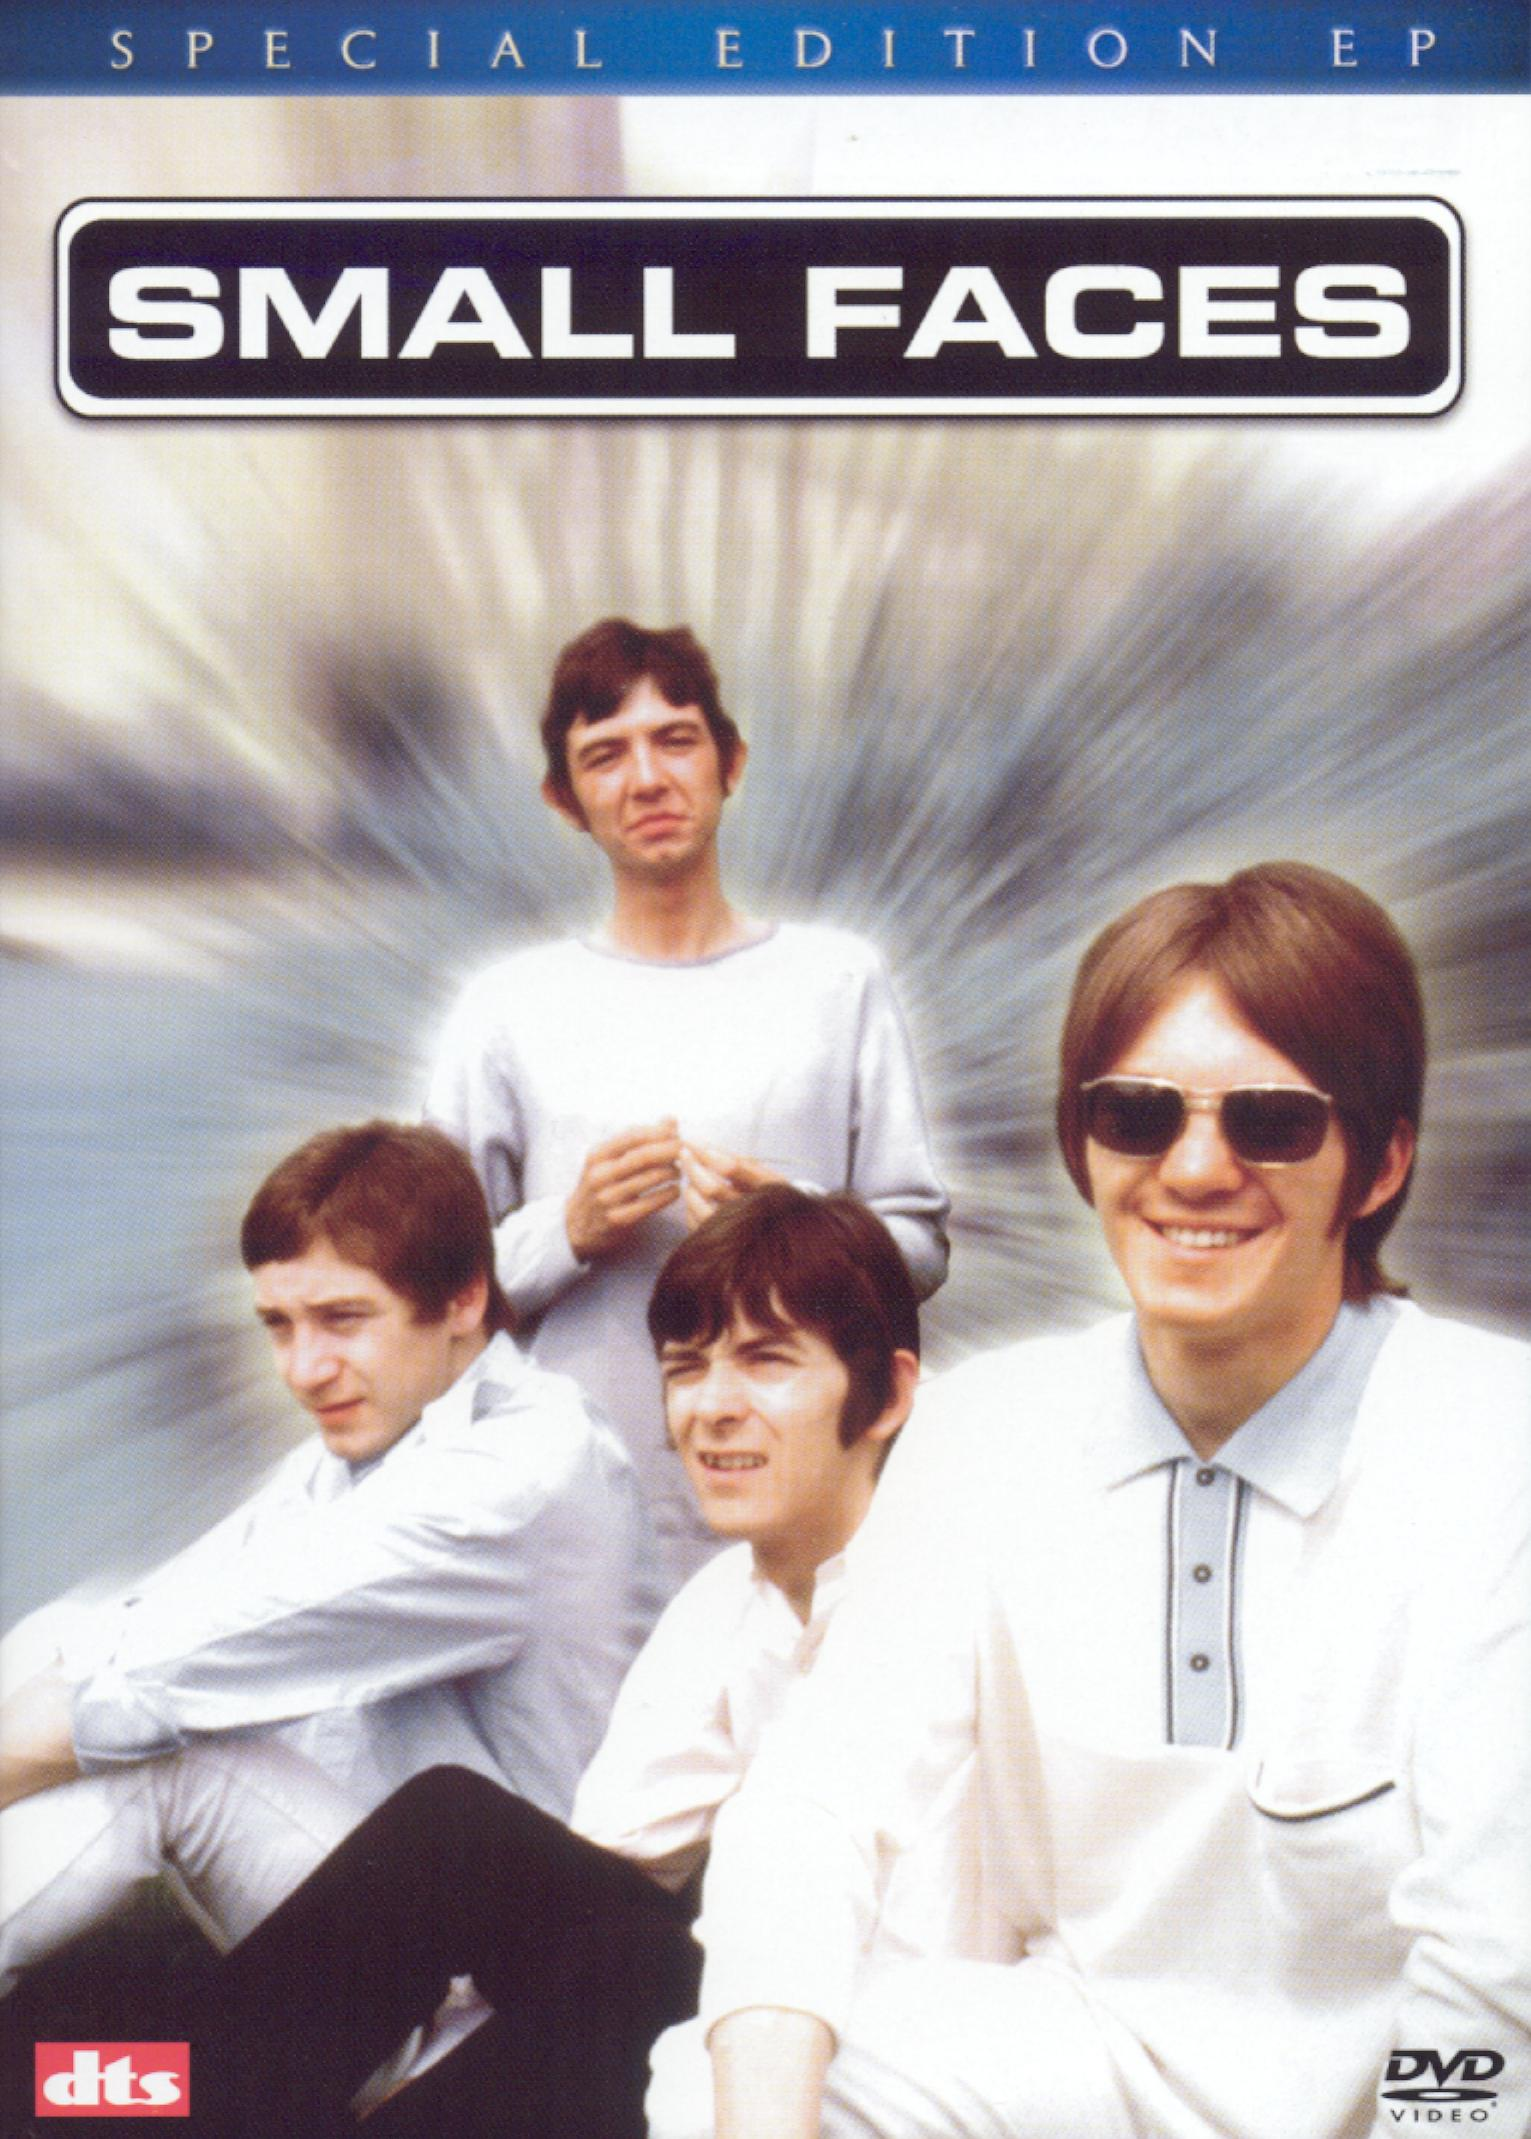 Small Faces EP